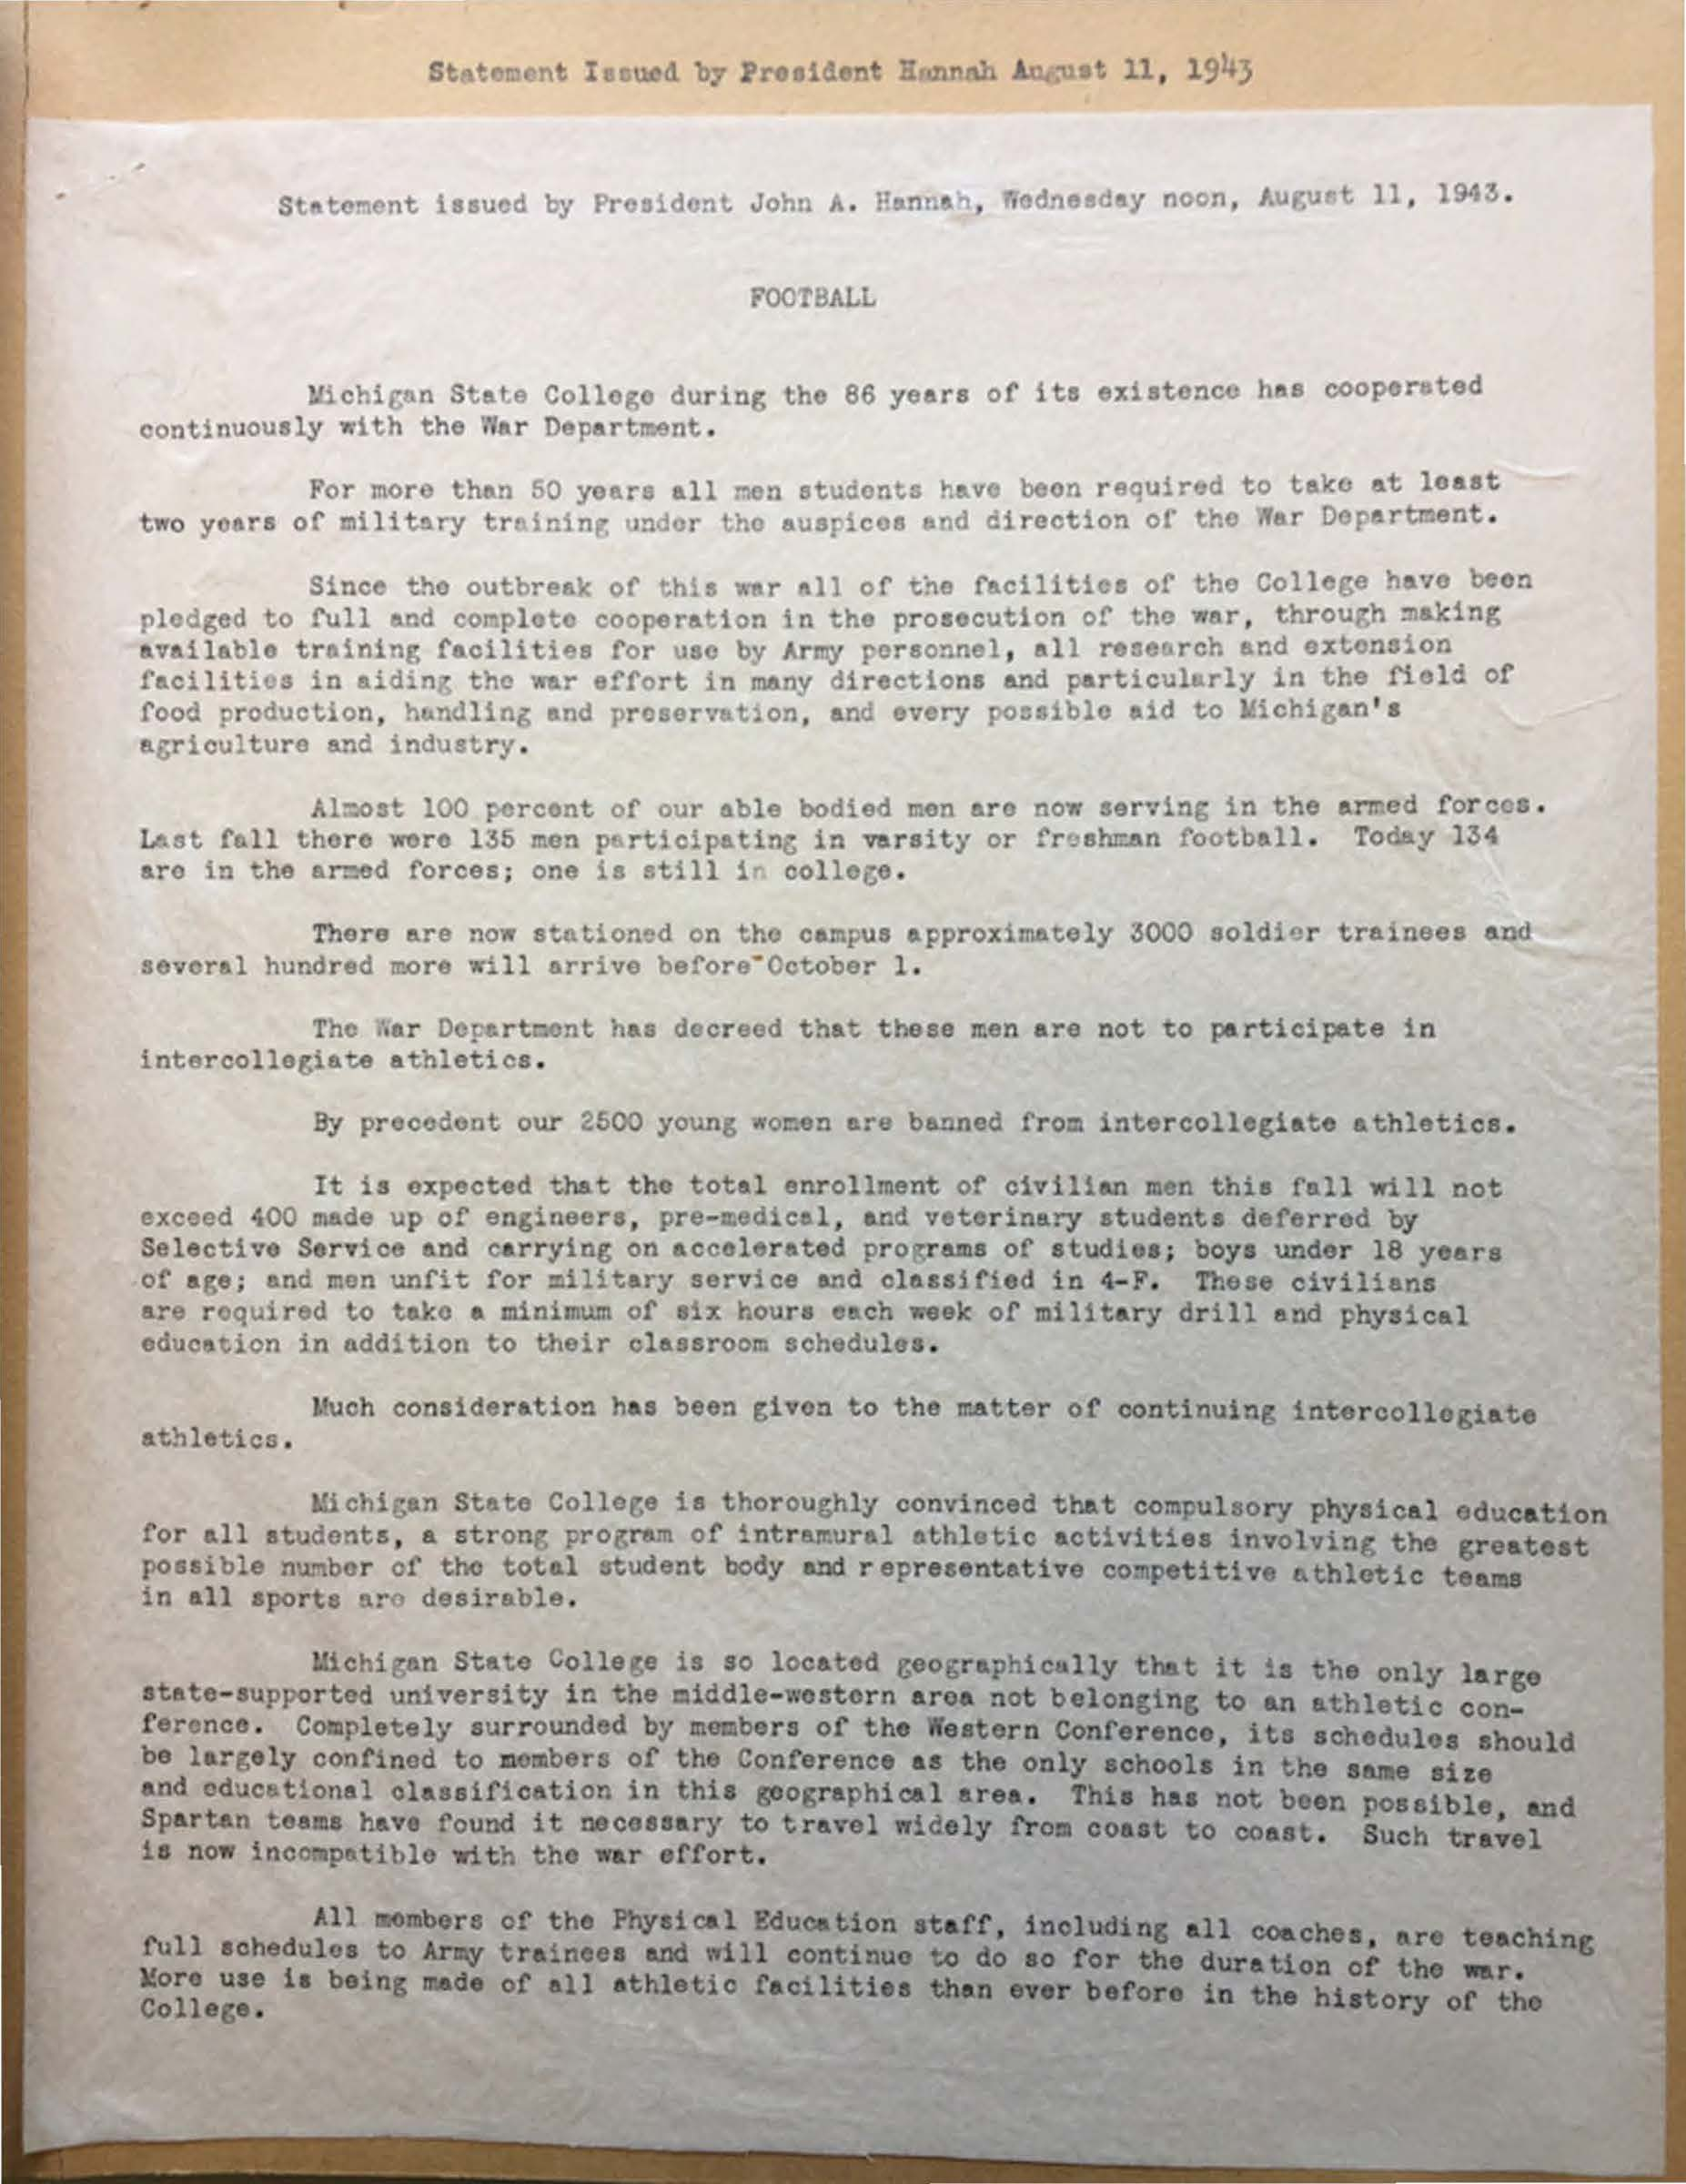 Statement of the 1943 football season cancelled